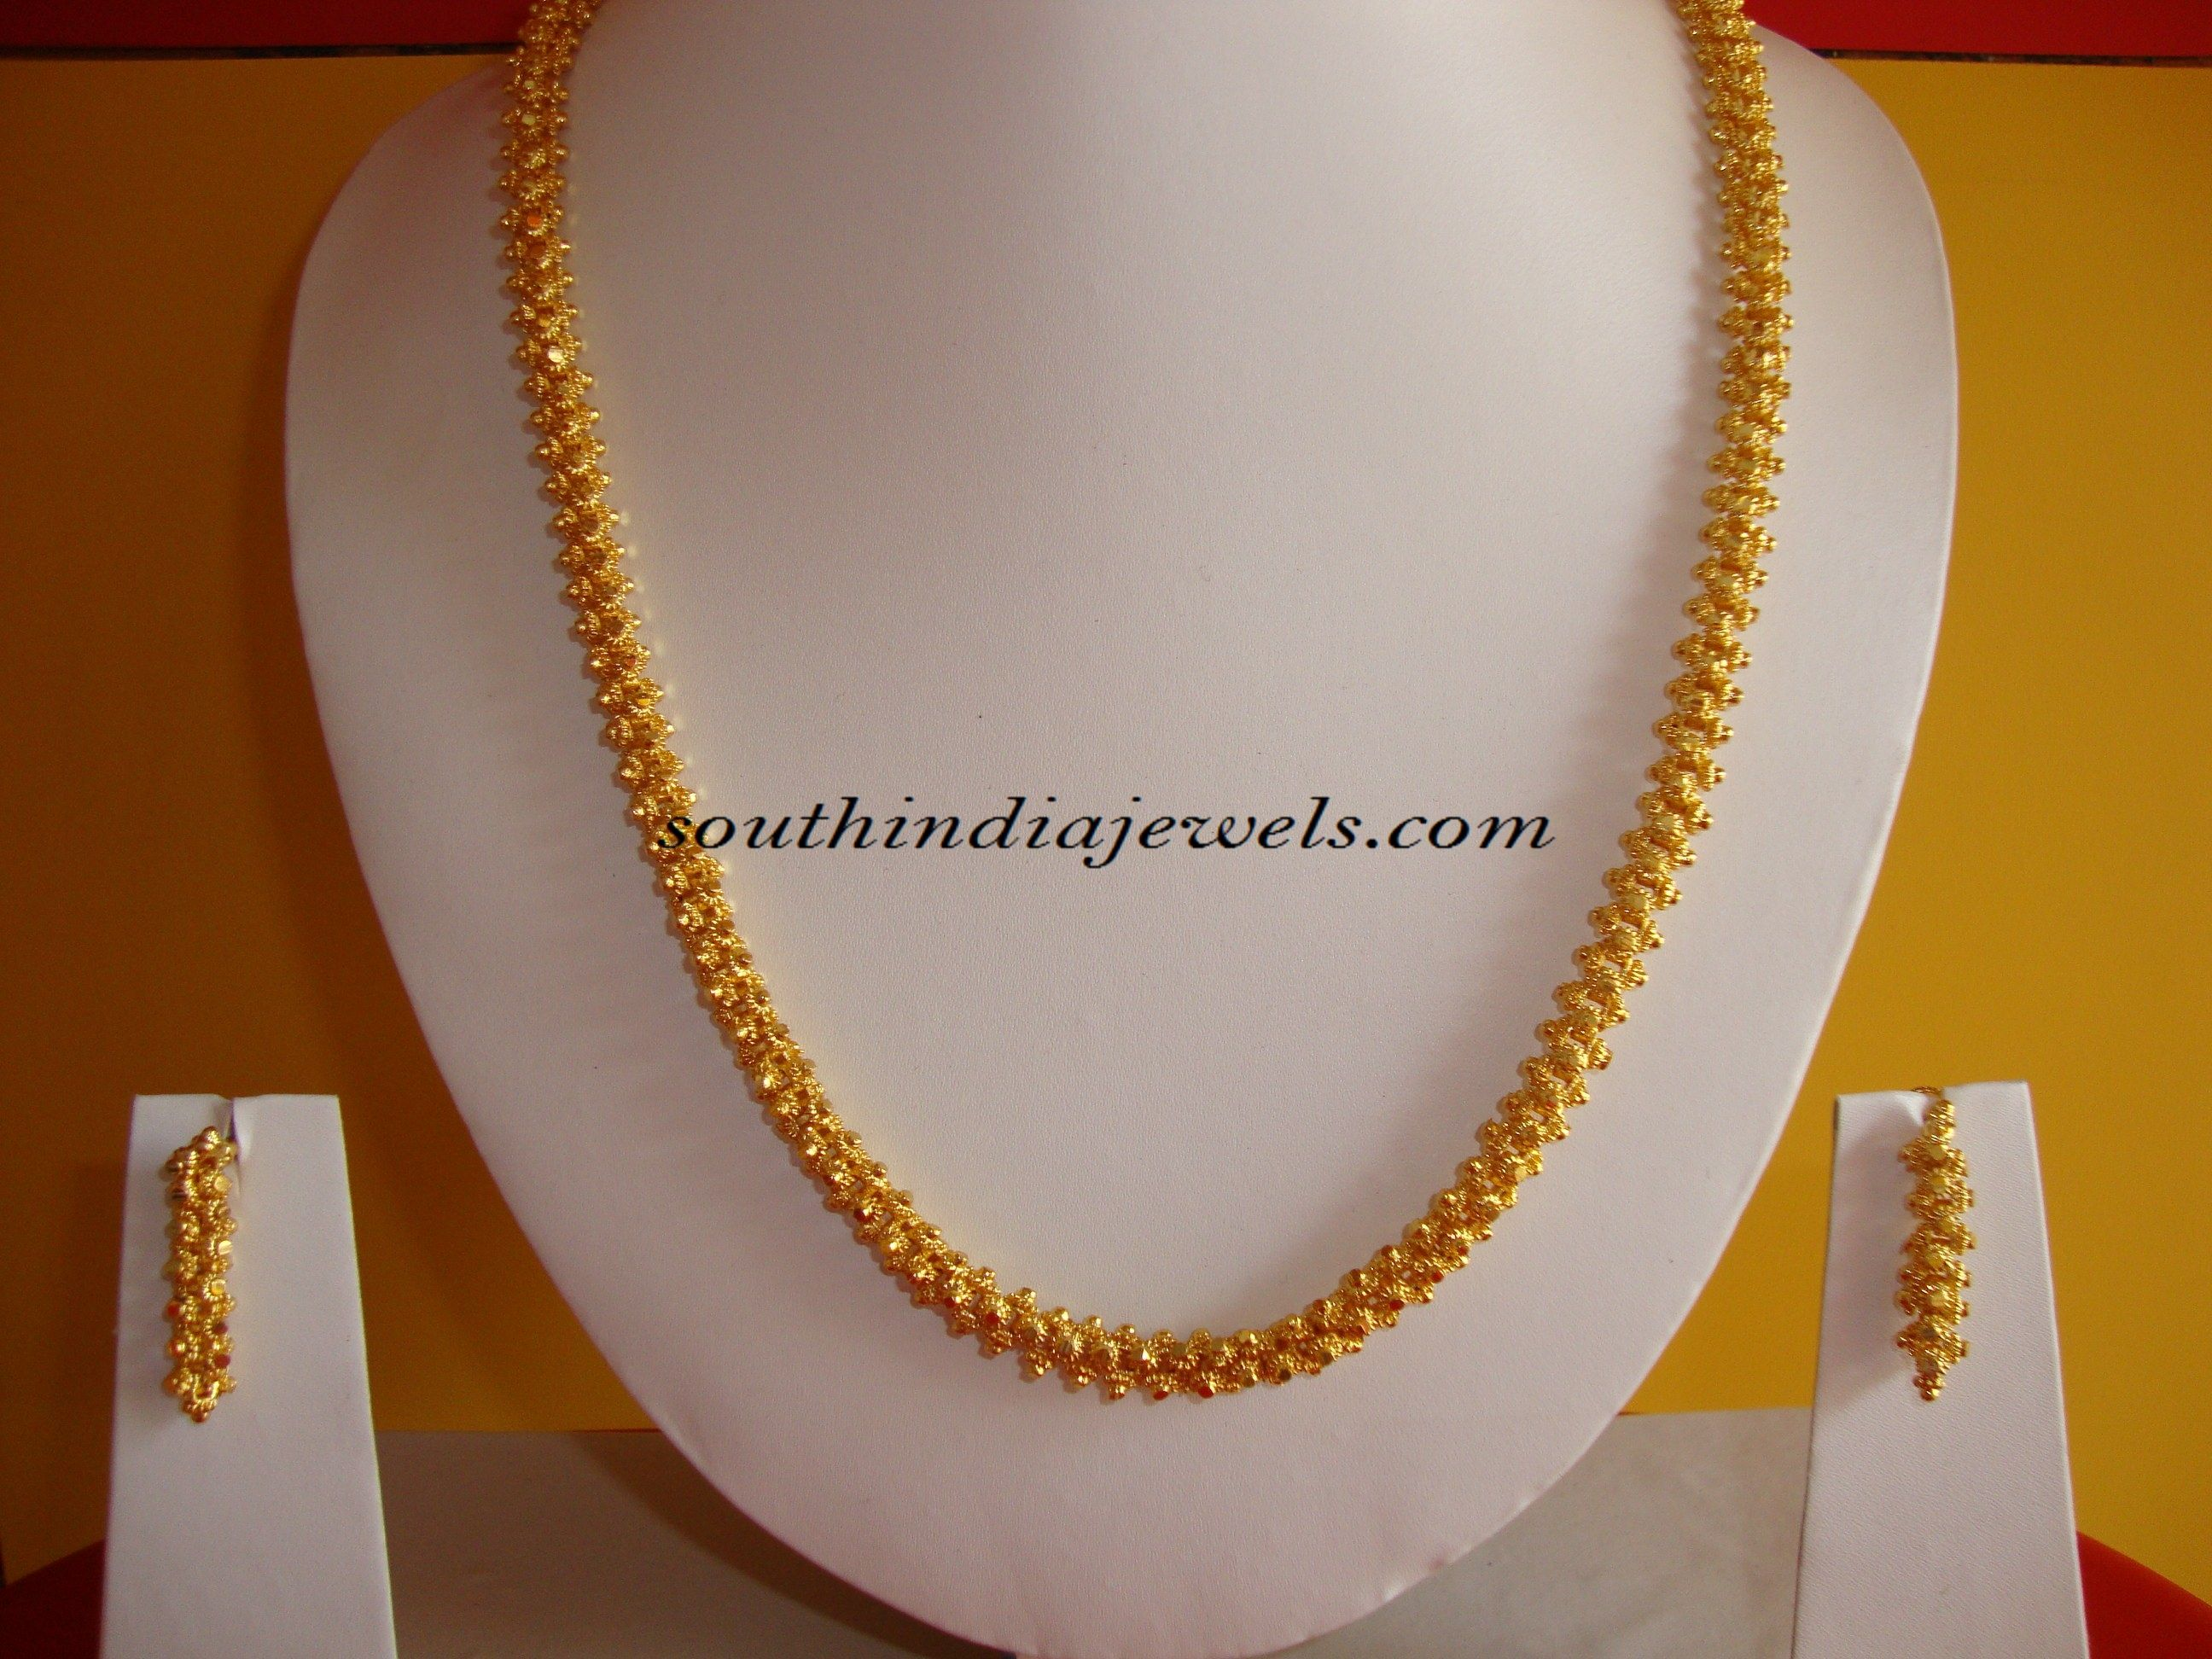 One gram gold jewelry chain design | Gold jewellery, Elegant and ...